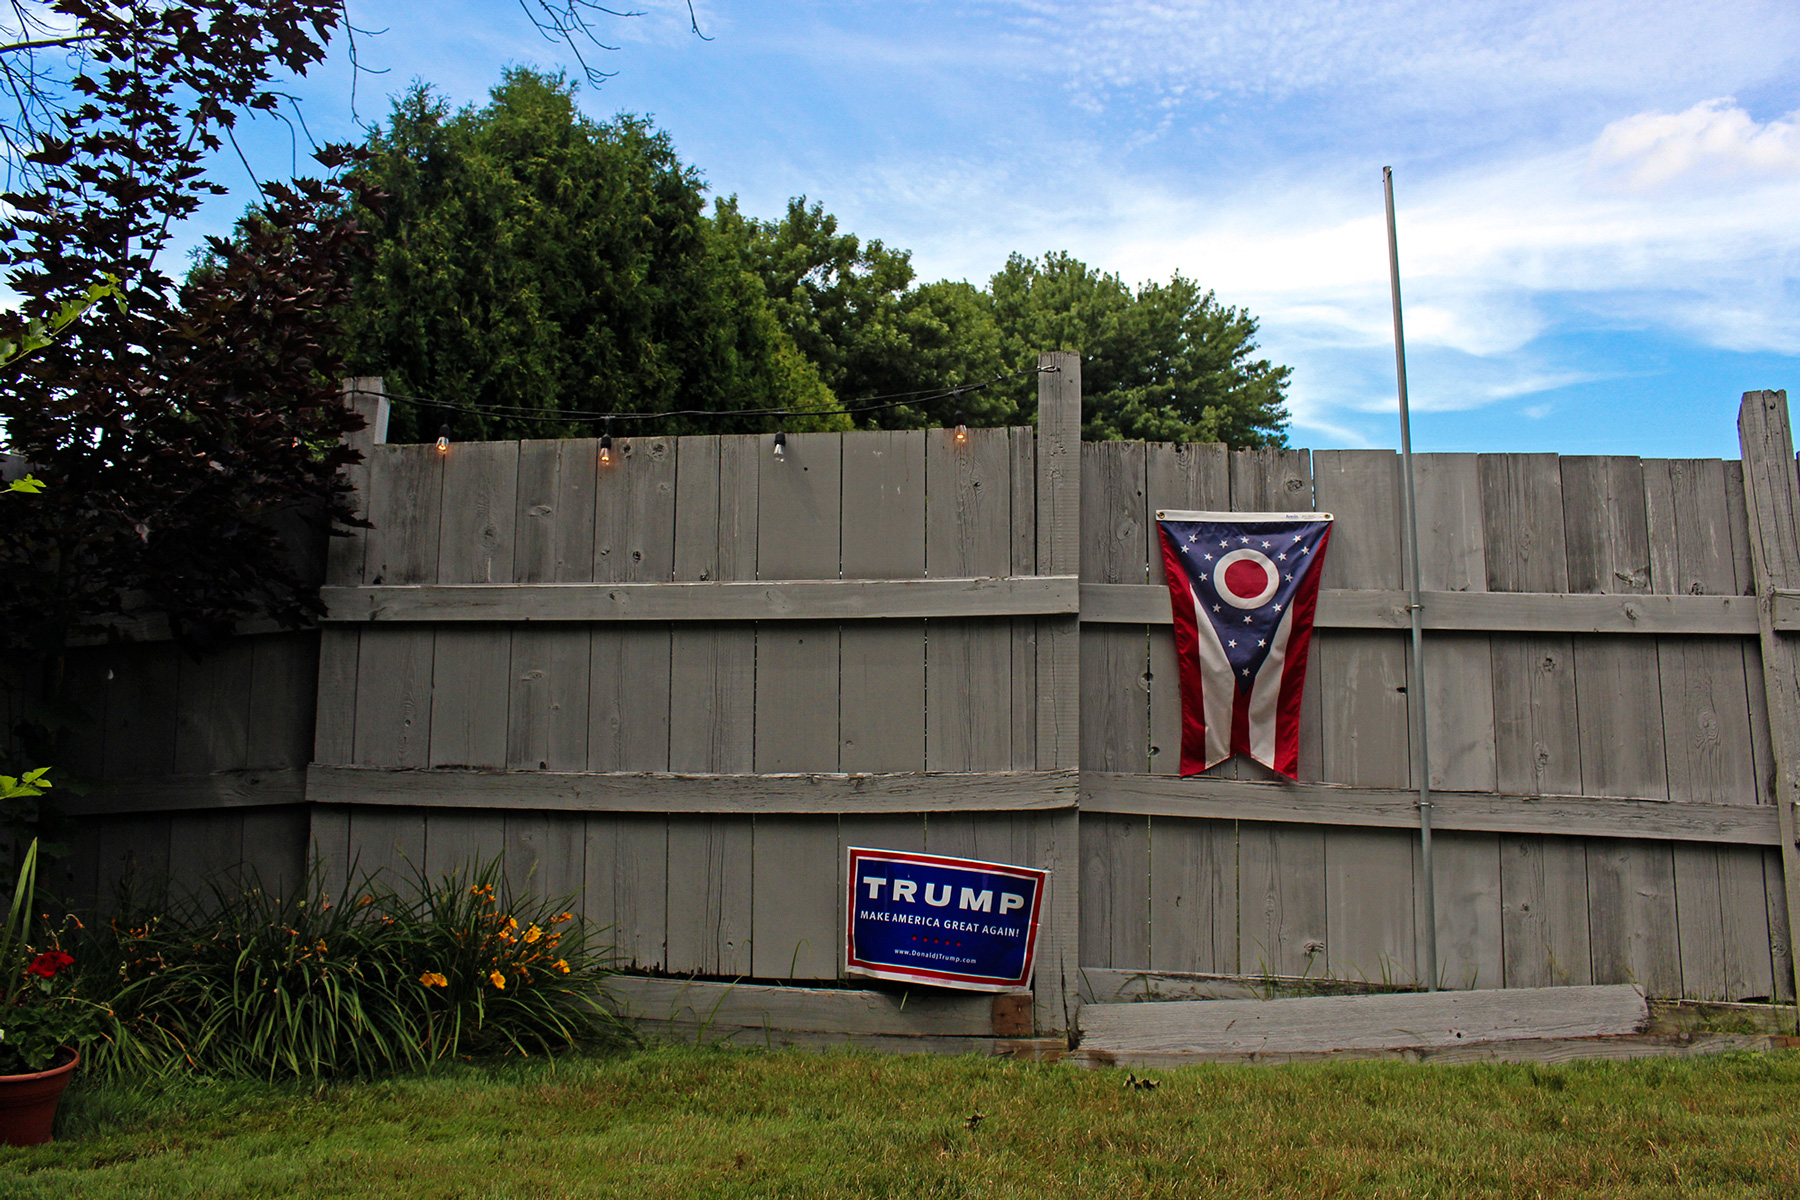 A Donald Trump campaign sign and Ohio state flag decorate the backyard of Kathy Miller, the Mahoning County chairwoman for Trump, in Boardman, Ohio. Miller is leading a grassroots movement encouraging Democratic voters to vote for Trump in November's general election. (Emily Mills/News21)